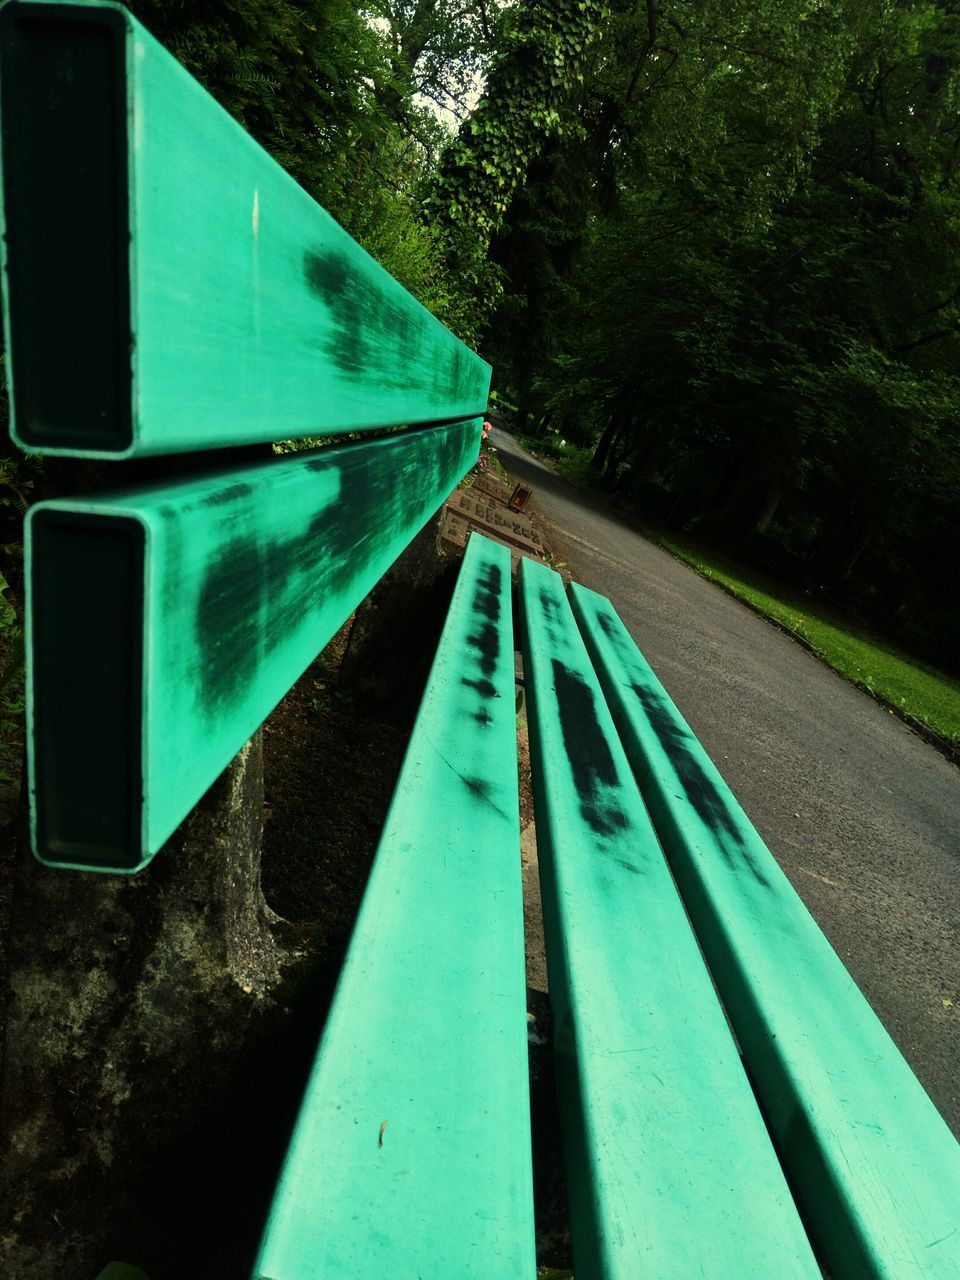 green color, day, no people, transportation, tree, outdoors, close-up, nature